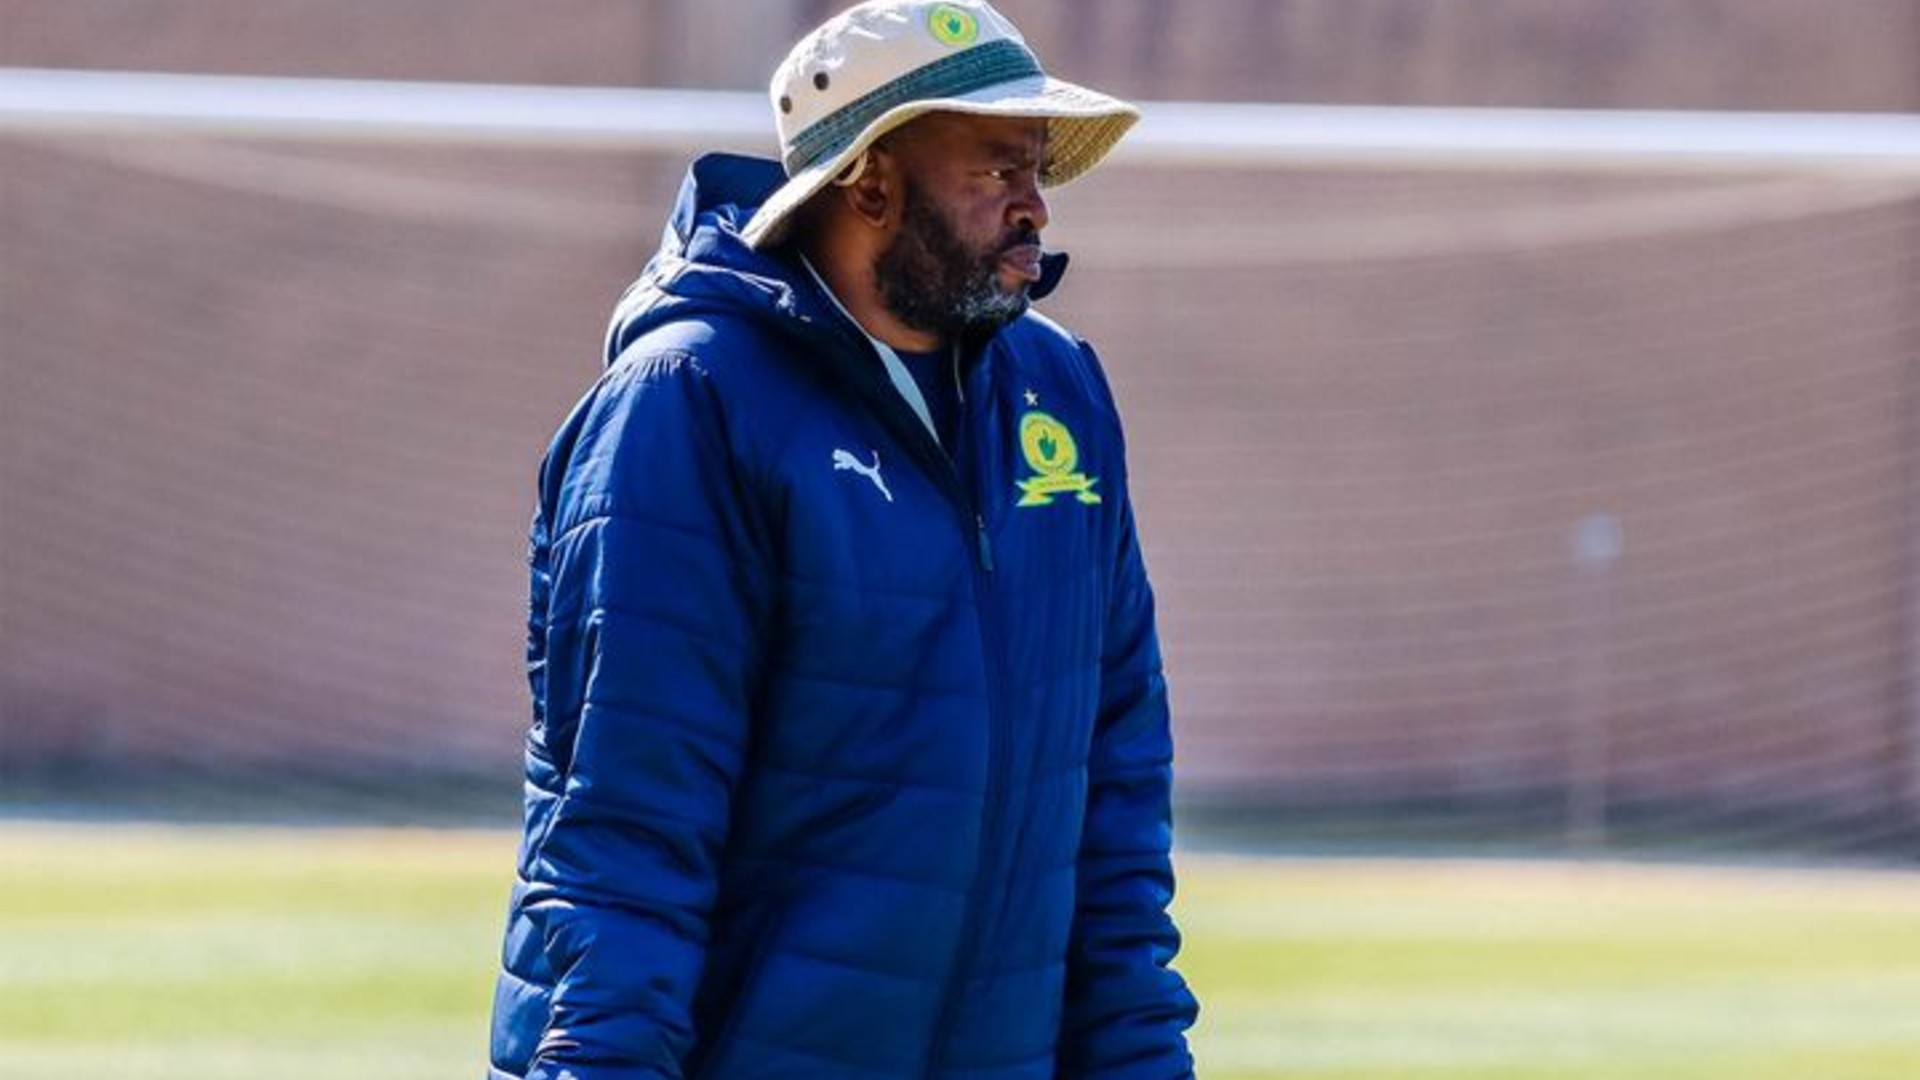 Mamelodi Sundowns didn't want to rely on away goal vs Golden Arrows - Mngqithi